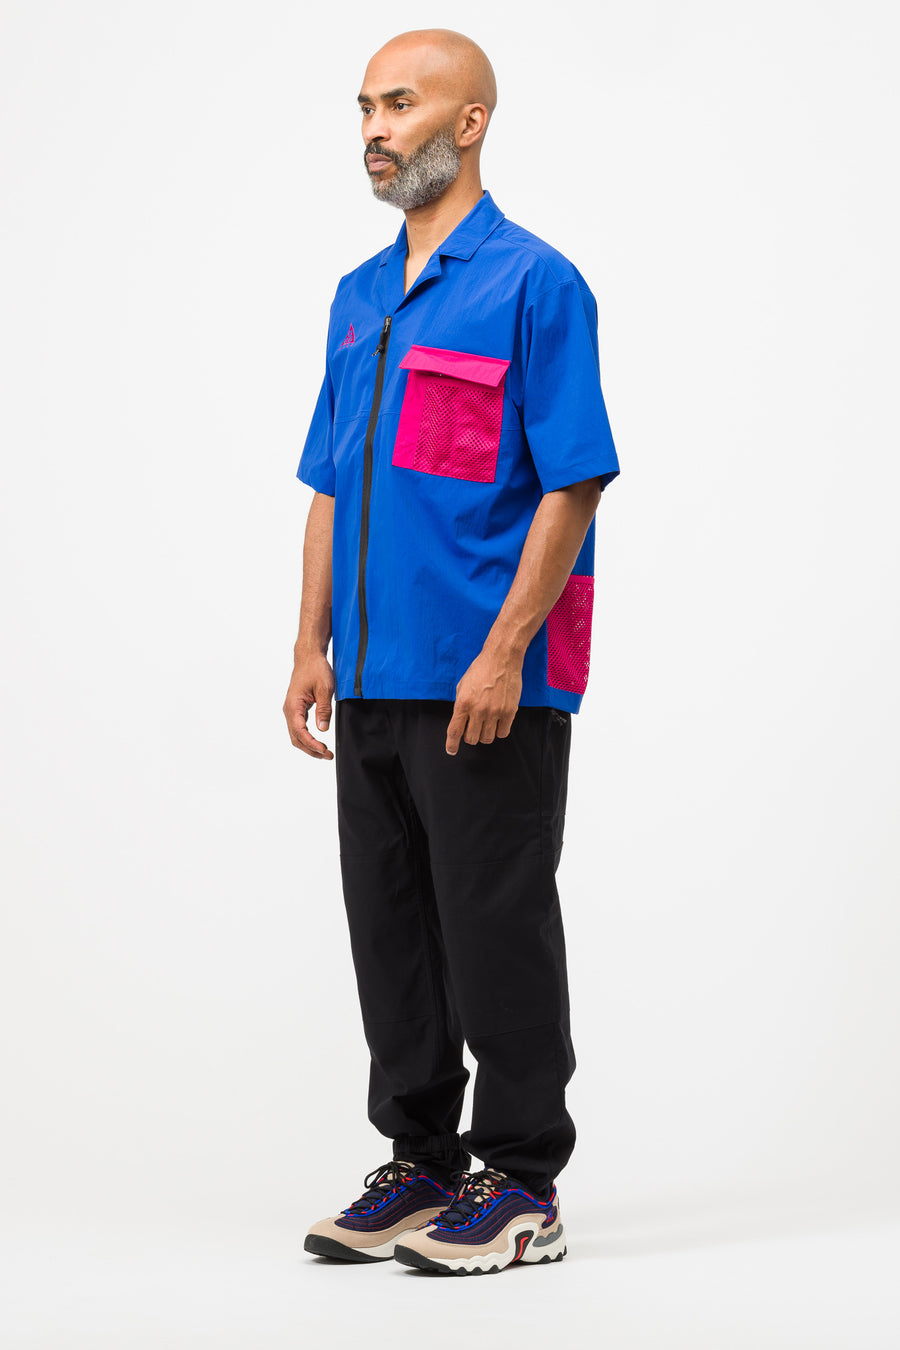 Nike ACG Top in Royal/Fuchsia - Notre